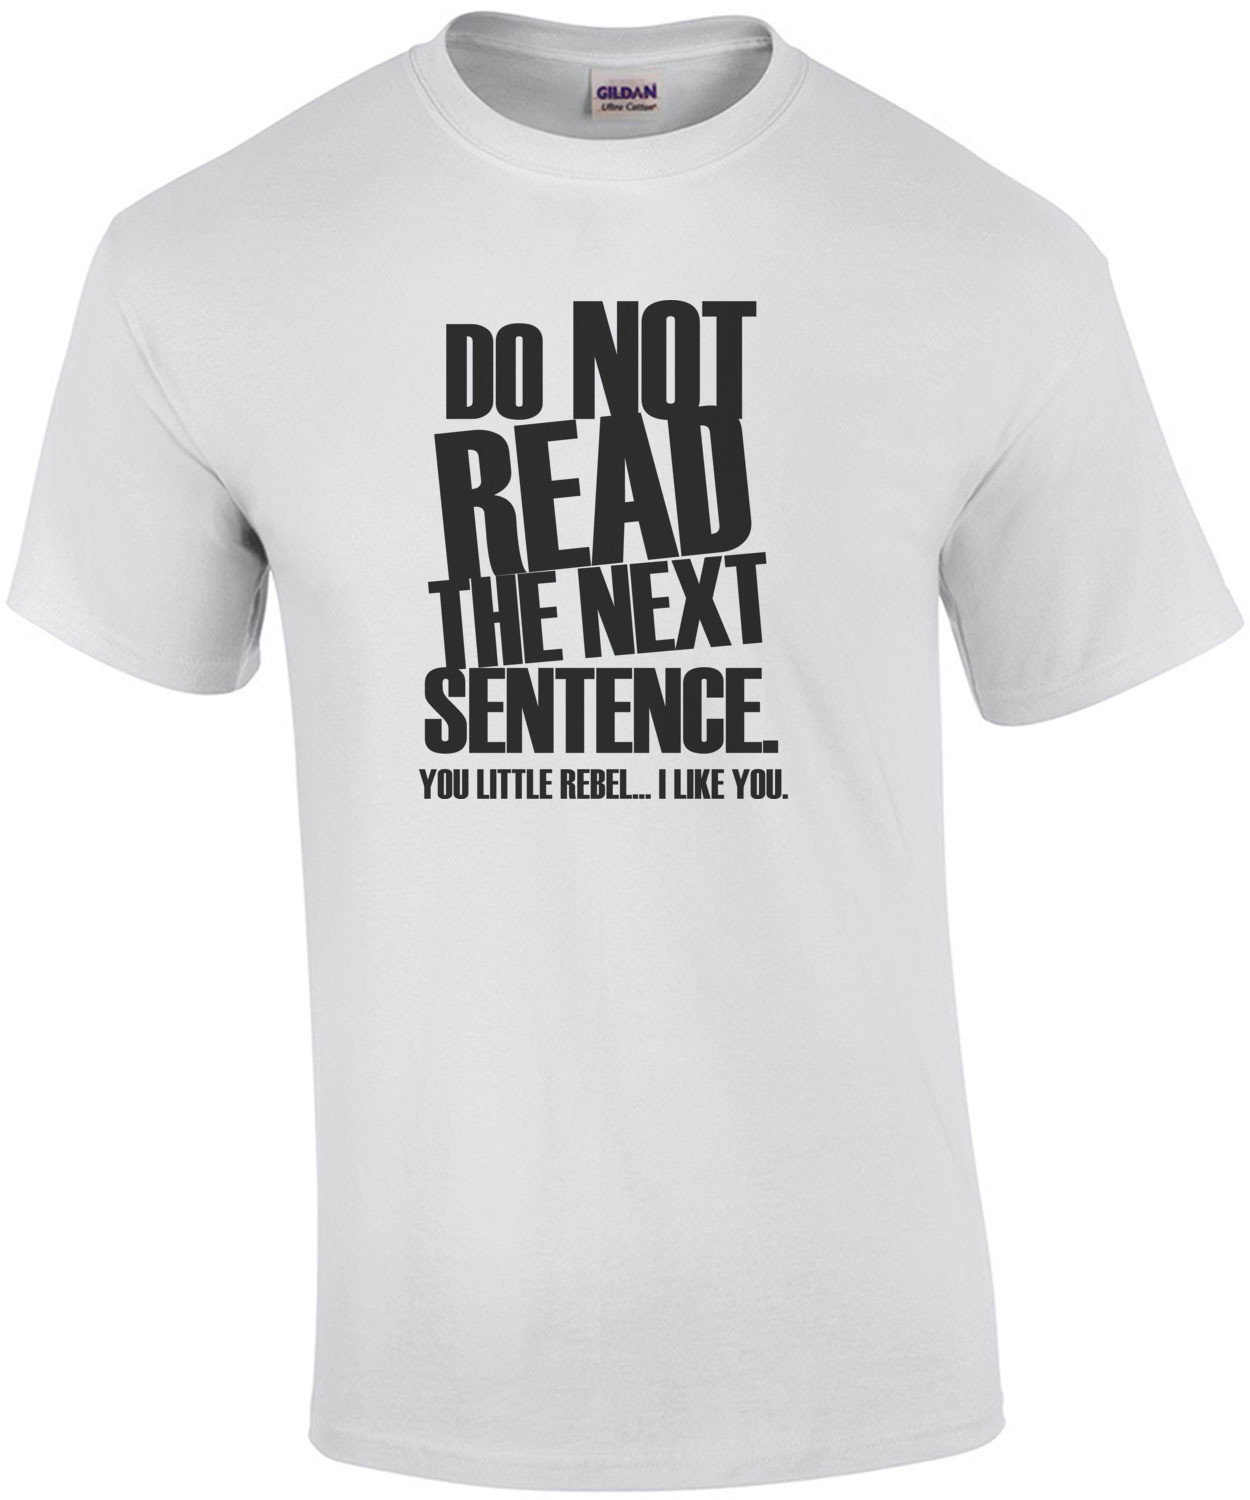 DON'T READ THE NEXT SENTENCE. You little rebel... I like you. Shirt